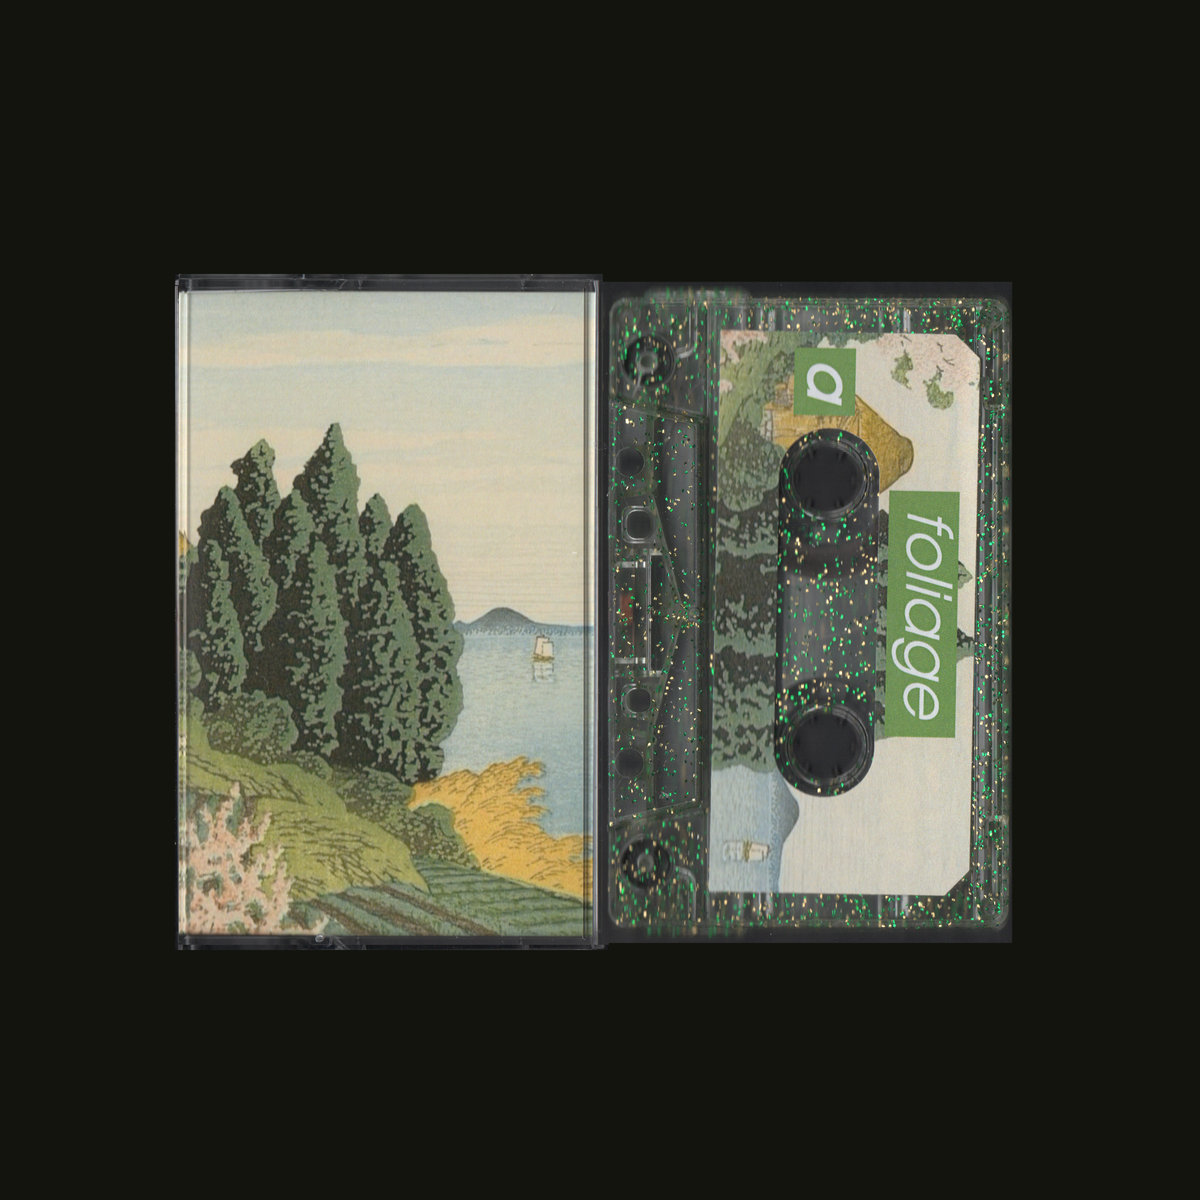 [SOLD] ❀ Foliage ❀ - III (Z Tapes)